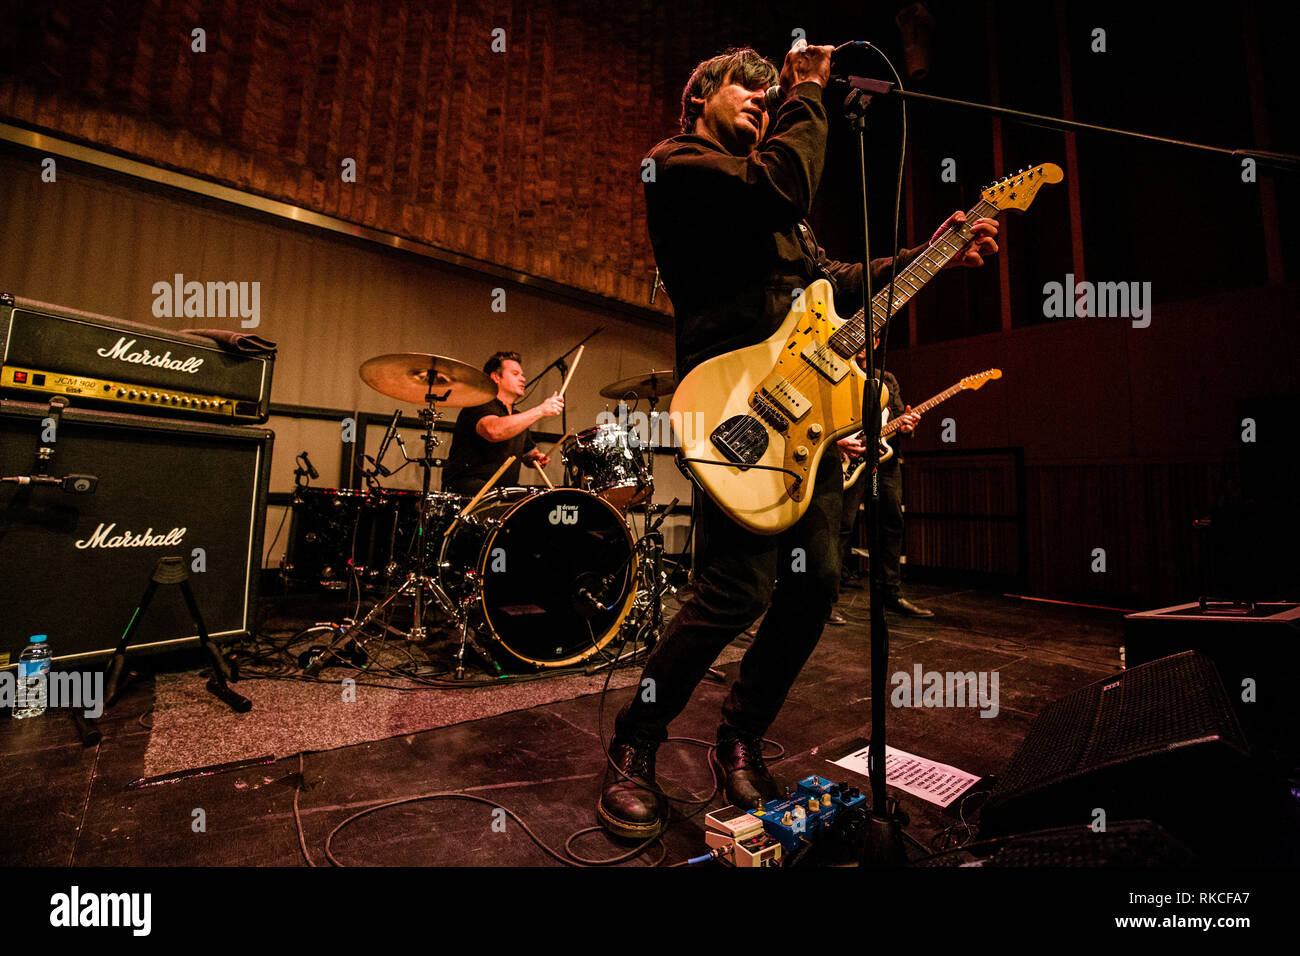 Cambridge, UK. 10th February, 2019. Conrad Keely of American indie art rock band ...And You Will Know Us by the Trail of Dead performs live at Storey's Field Centre in Eddington celebrating 20 years of the album Madonna. Richard Etteridge / Alamy Live News - Stock Image